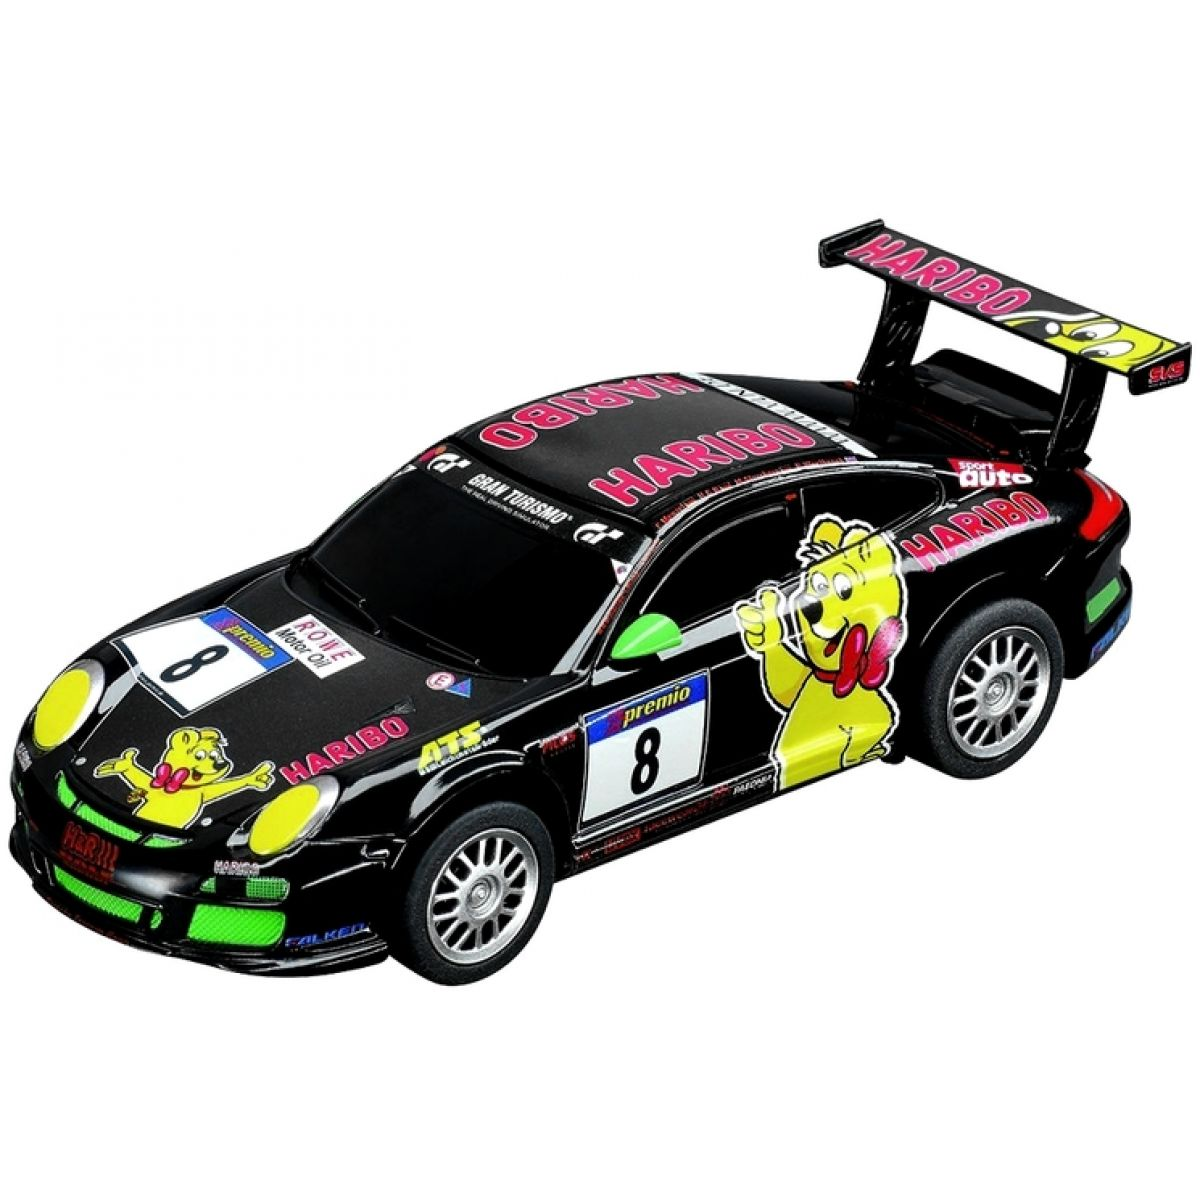 Carrera GO Porsche GT3 Haribo Racing, No.8